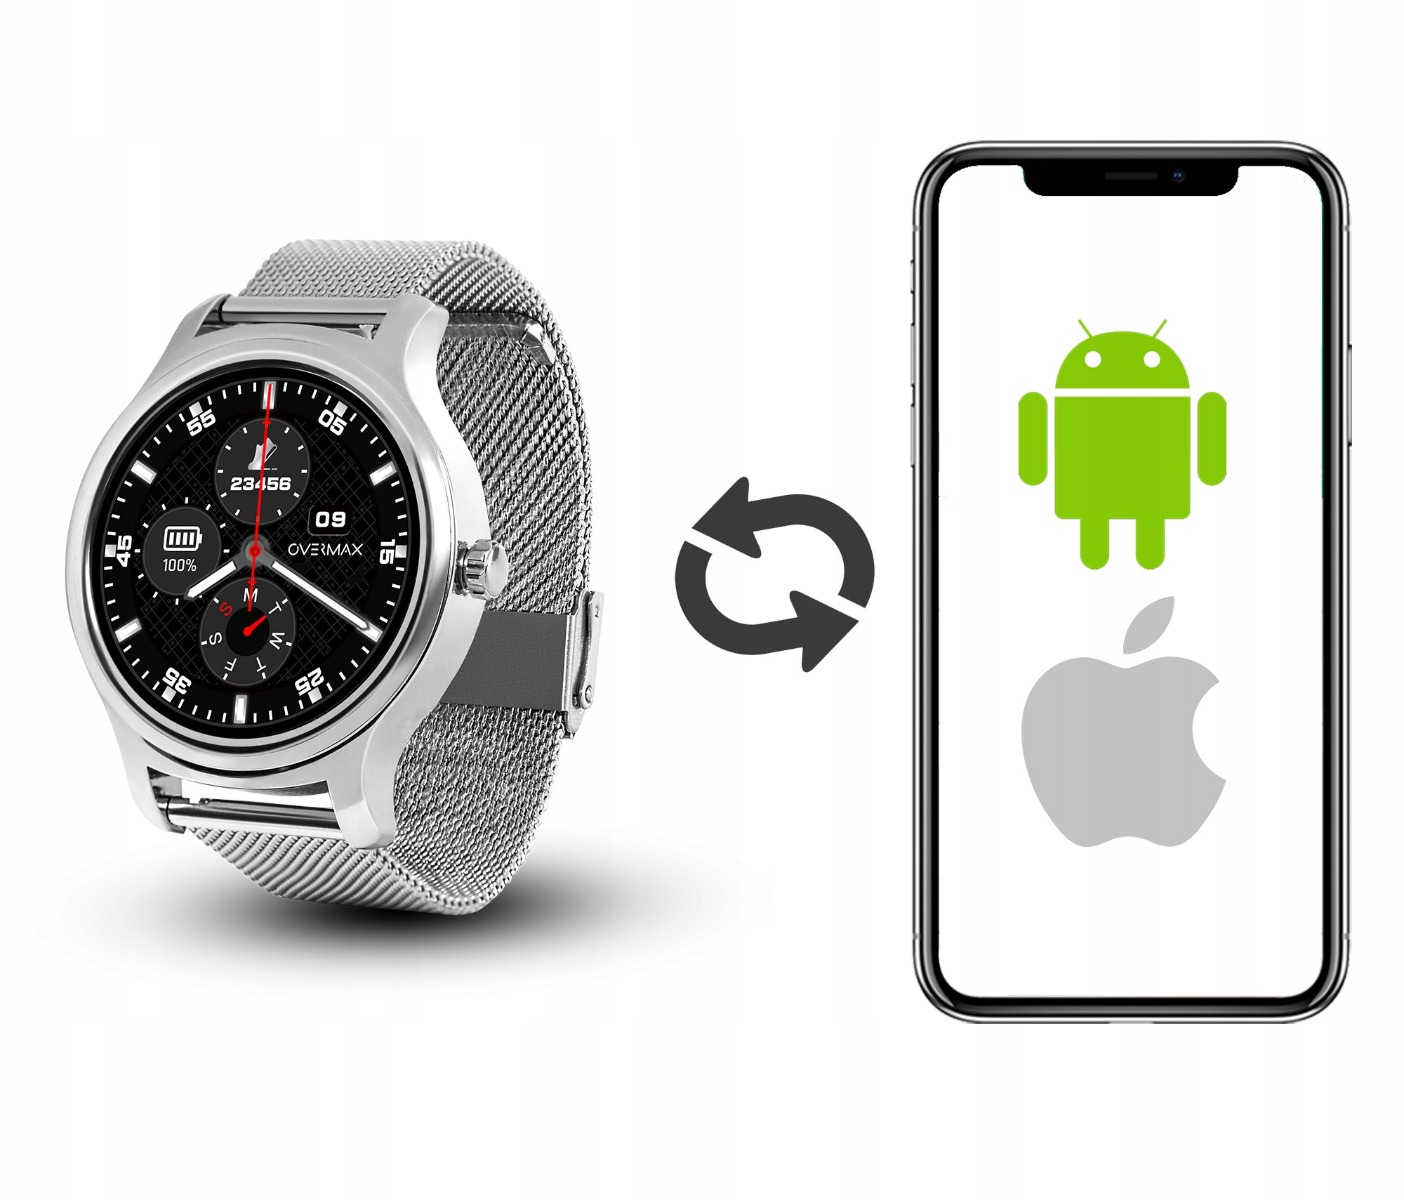 Smartwatch Overmax Touch 2.6 Black